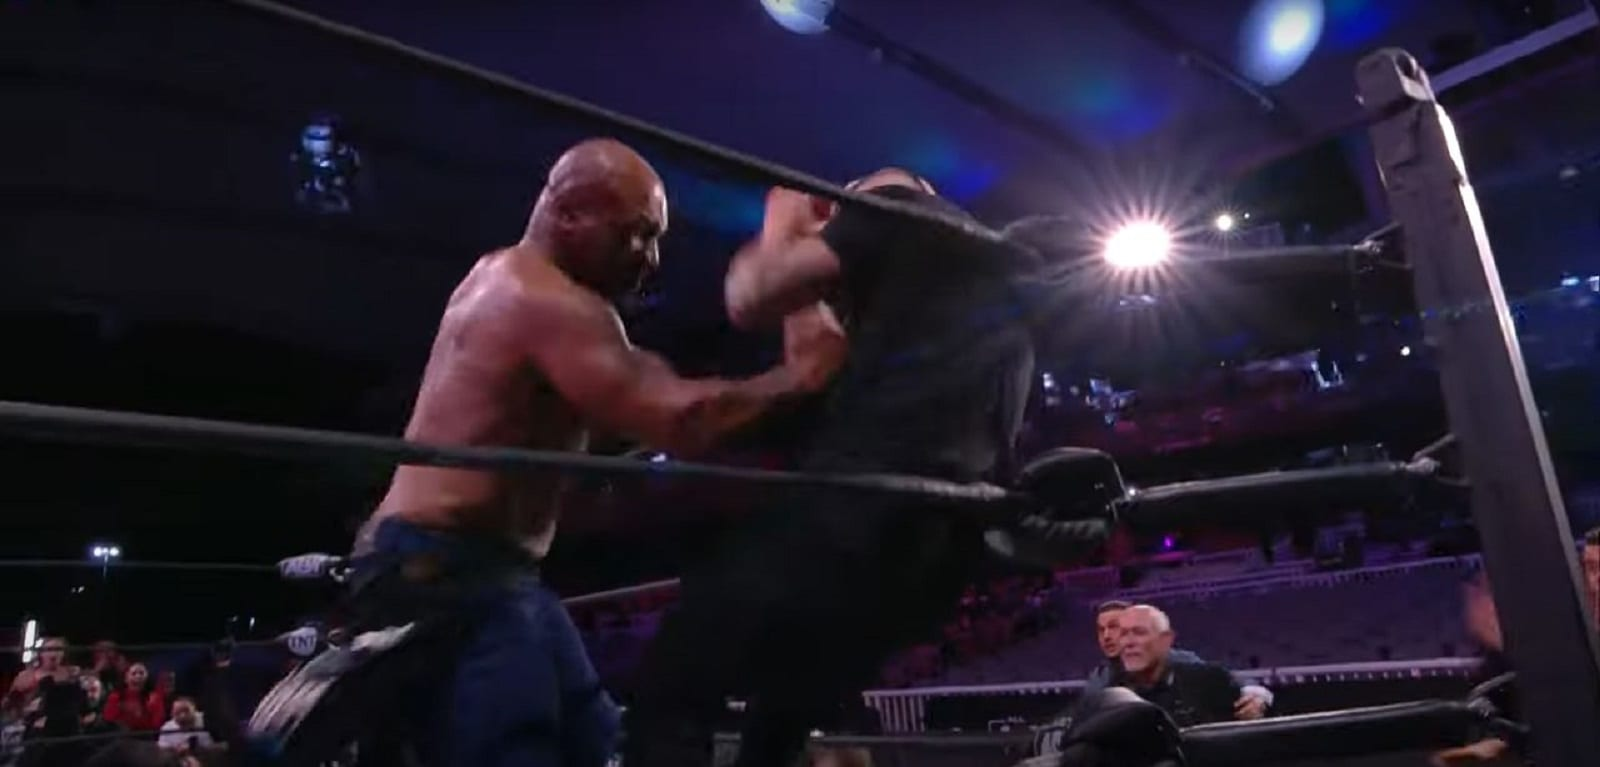 Mike Tyson Unleashes The Fury On Unsuspecting Wrestler